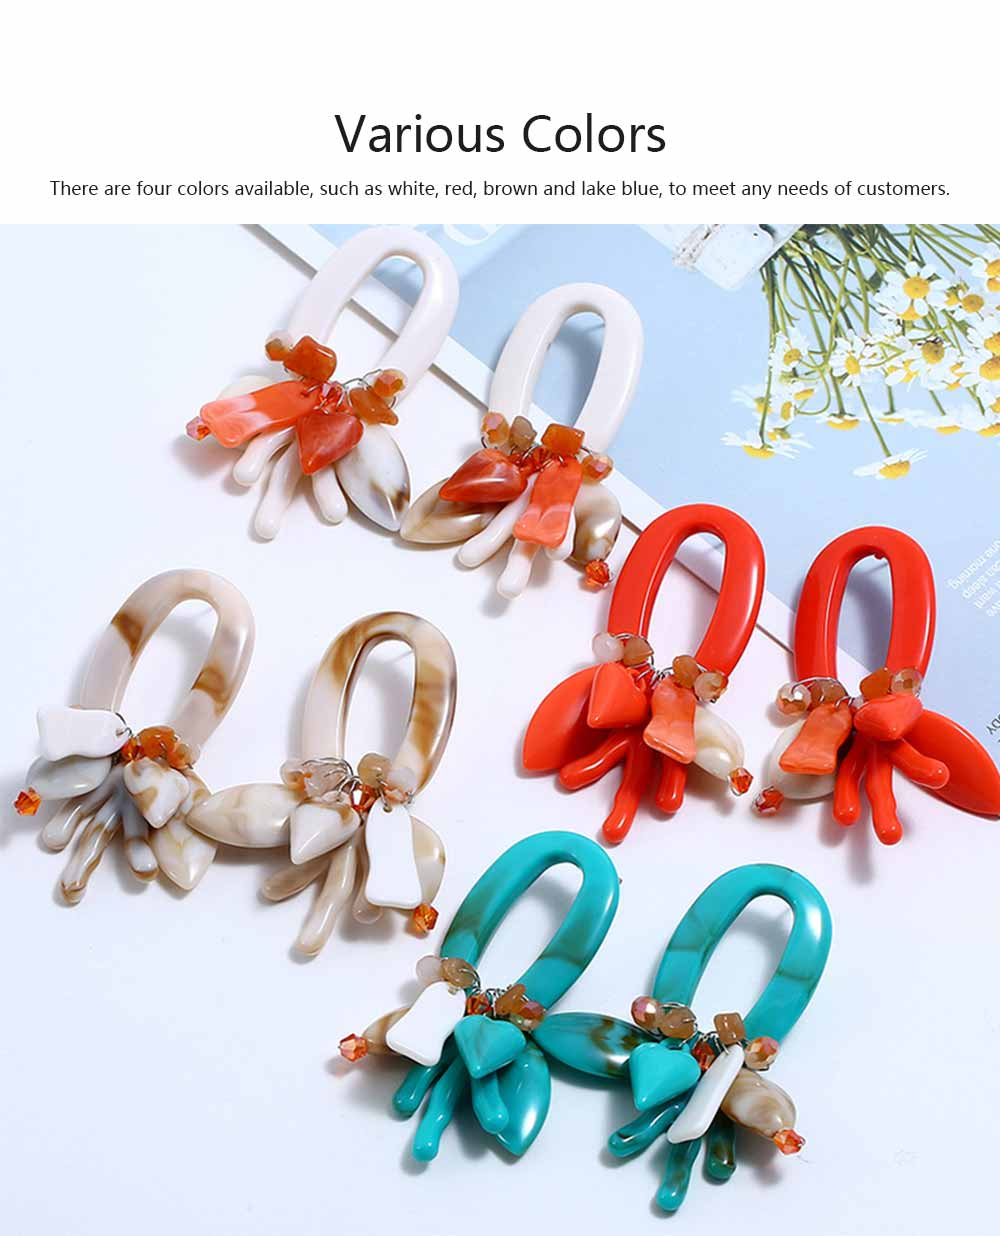 Coral Shell Earrings Plastics Zinc Alloy Material Ear Pendant Exaggerated Style Fashionable Ear Stud 3